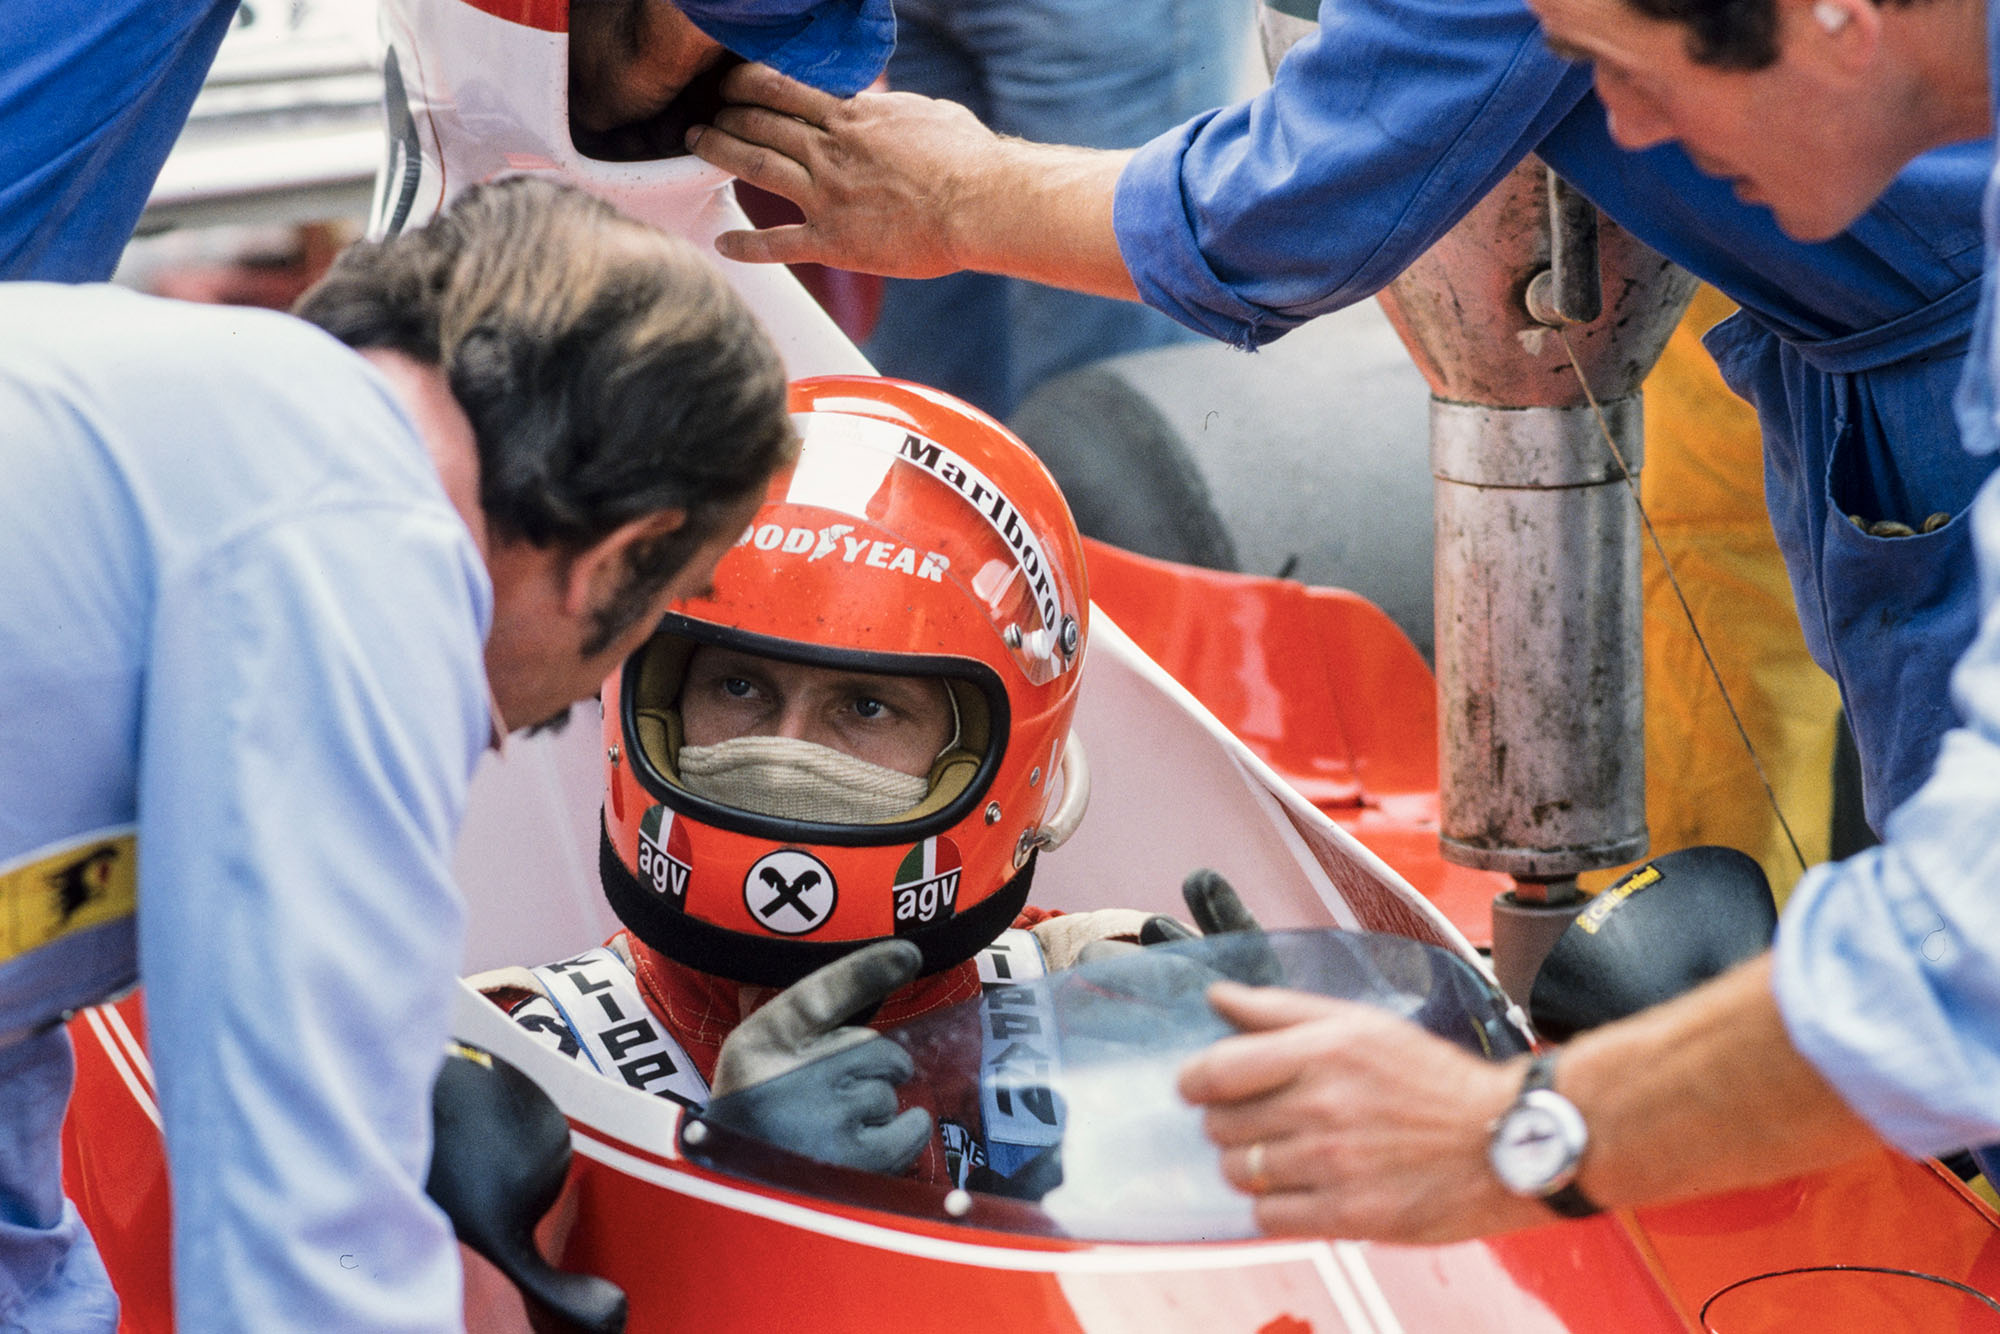 Niki Lauda (Ferrari) sits in his Ferrari at the 1975 Italian Grand Prix, Monza.